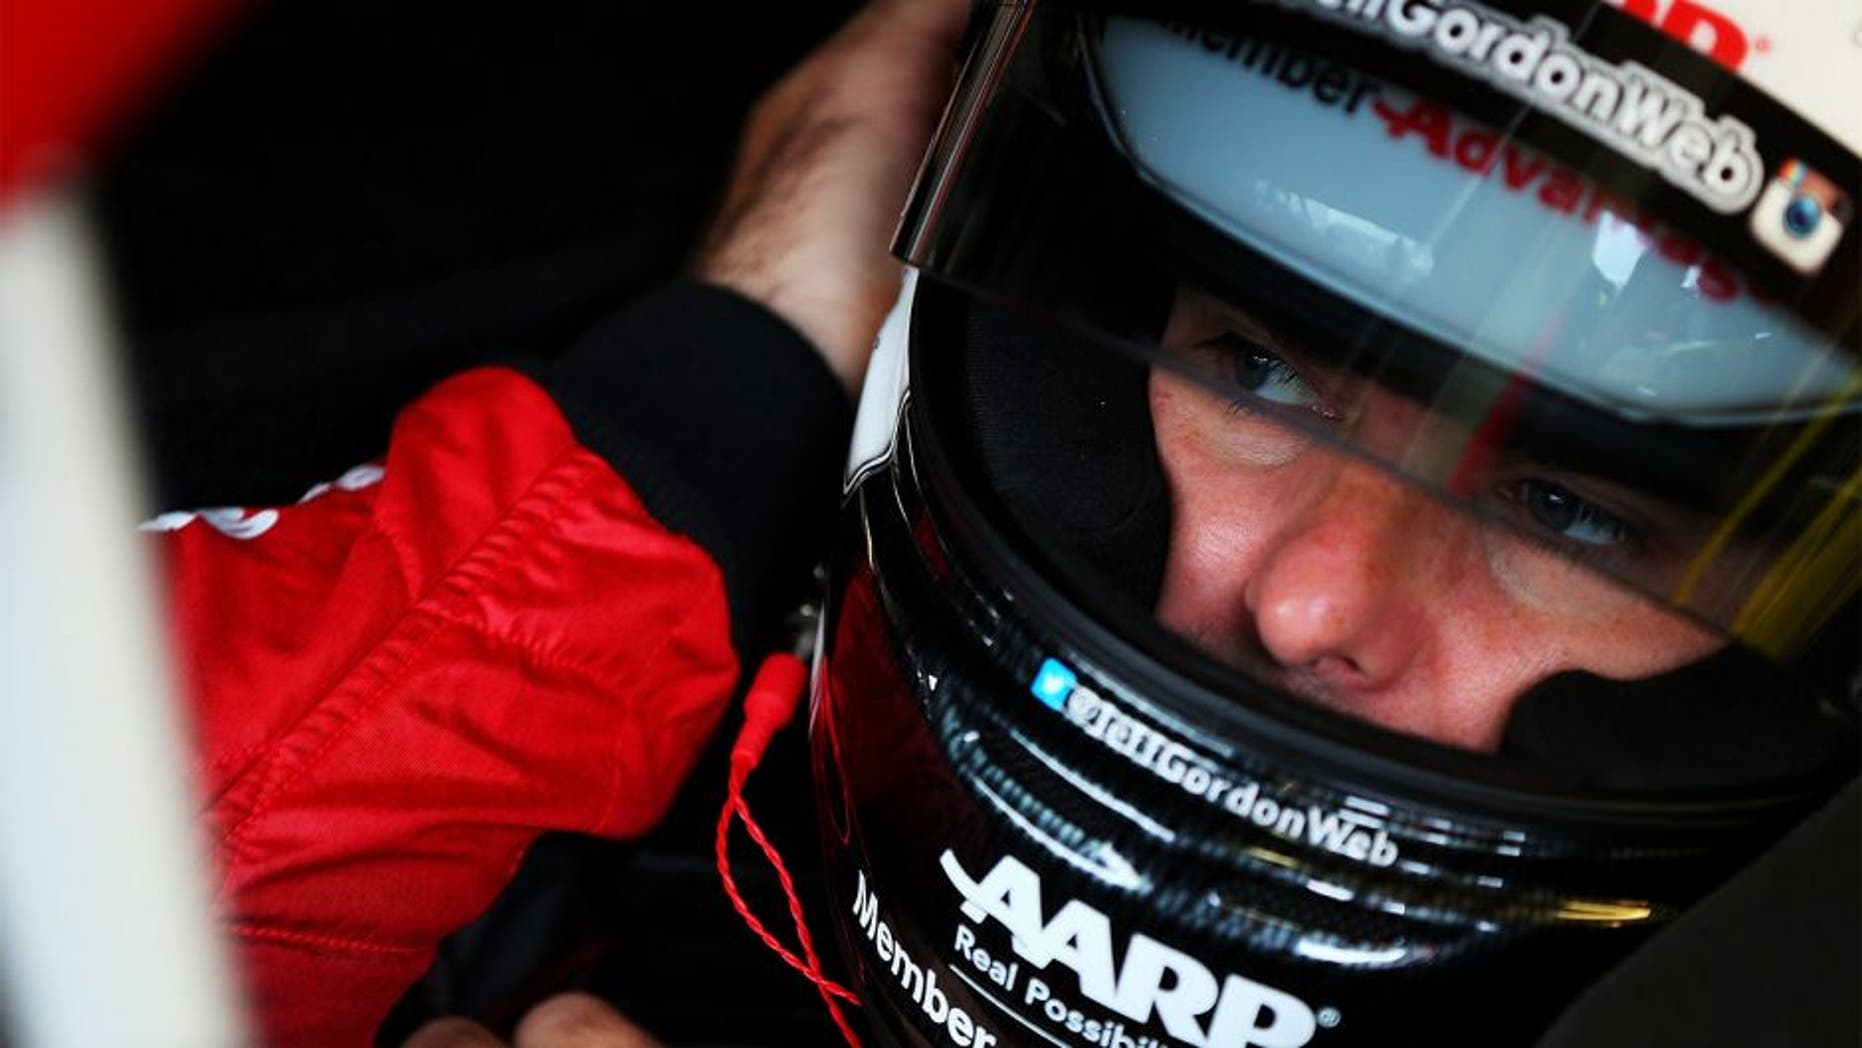 SPARTA, KY - JULY 10: Jeff Gordon, driver of the #24 AARP Member Advantages Chevrolet, prepares his helmet in the garage area during practice for the NASCAR Sprint Cup Series Quaker State 400 Presented by Advance Auto Parts at Kentucky Speedway on July 10, 2015 in Sparta, Kentucky. (Photo by Matt Sullivan/NASCAR via Getty Images)